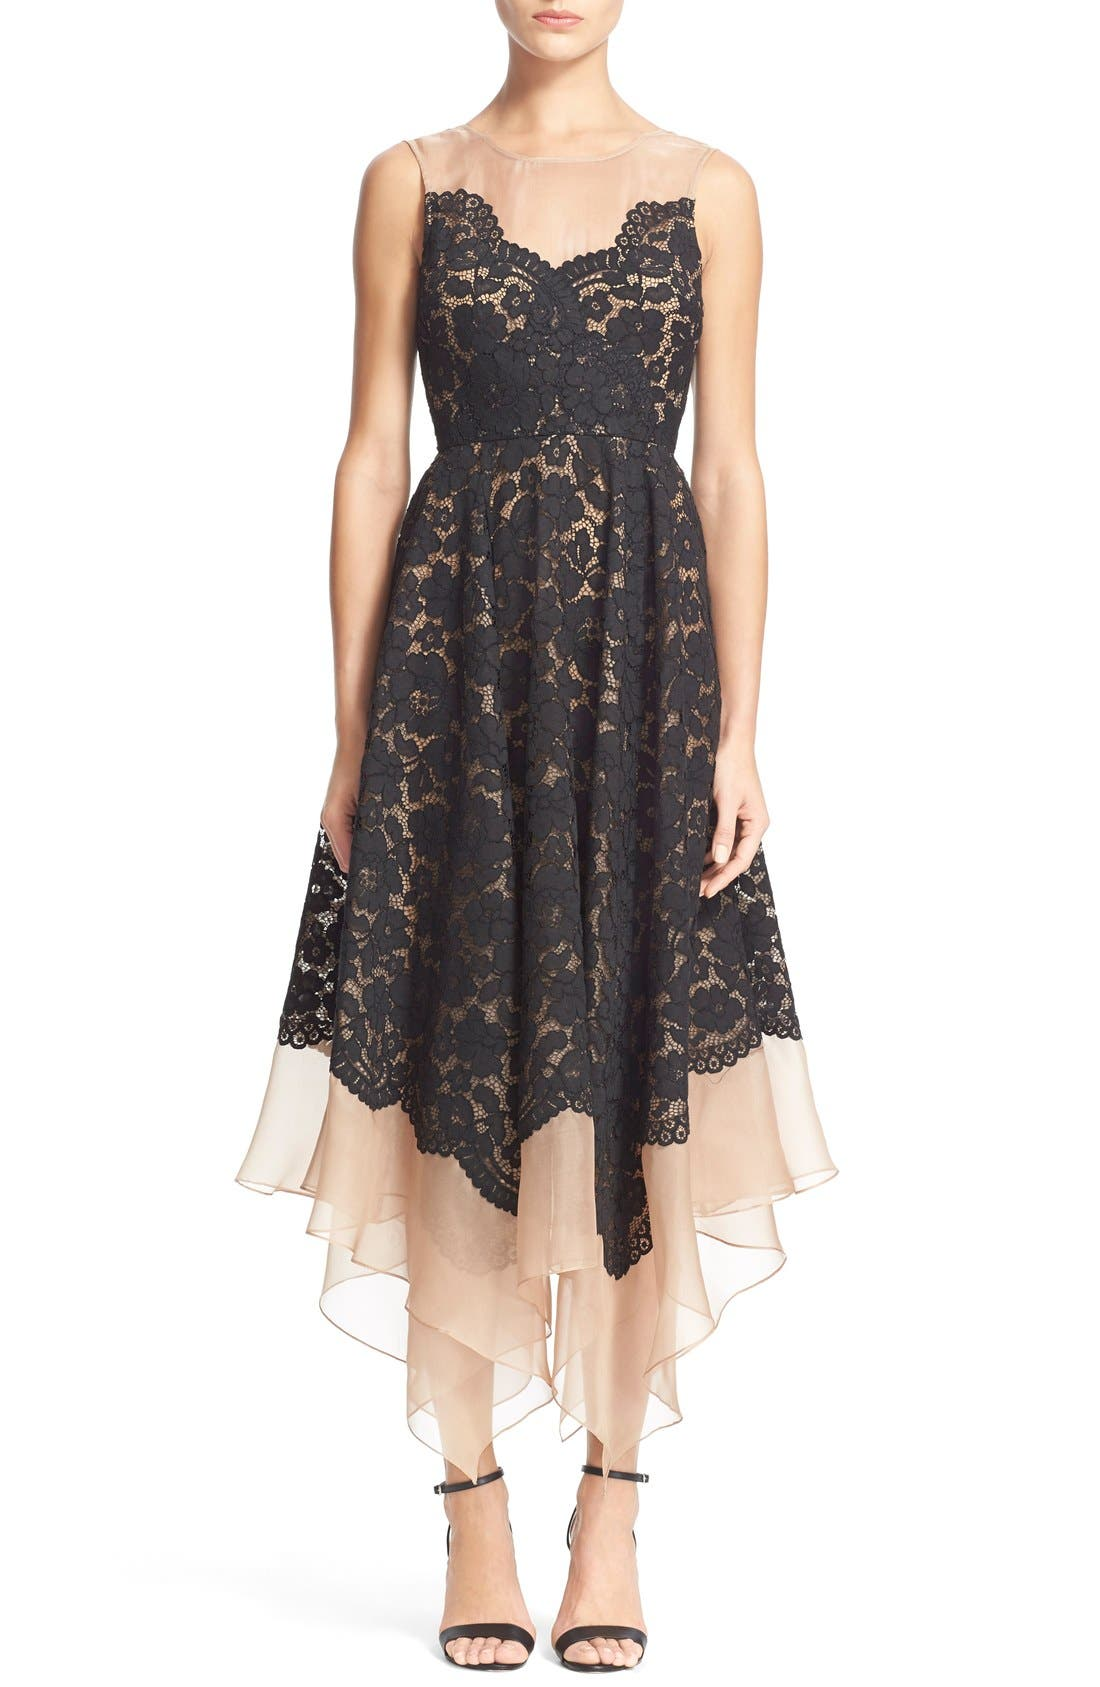 Main Image - Tracy Reese Lace Overlay Handkerchief Illusion Dress